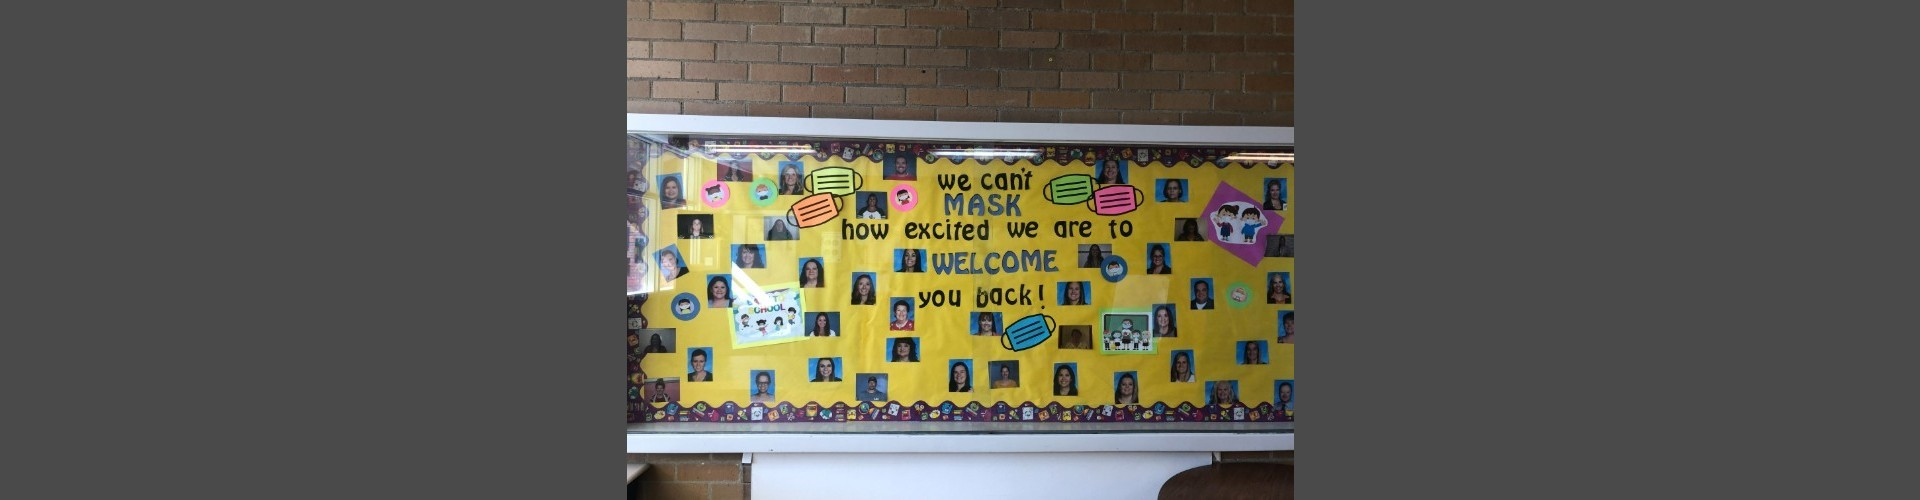 staff bulletin board